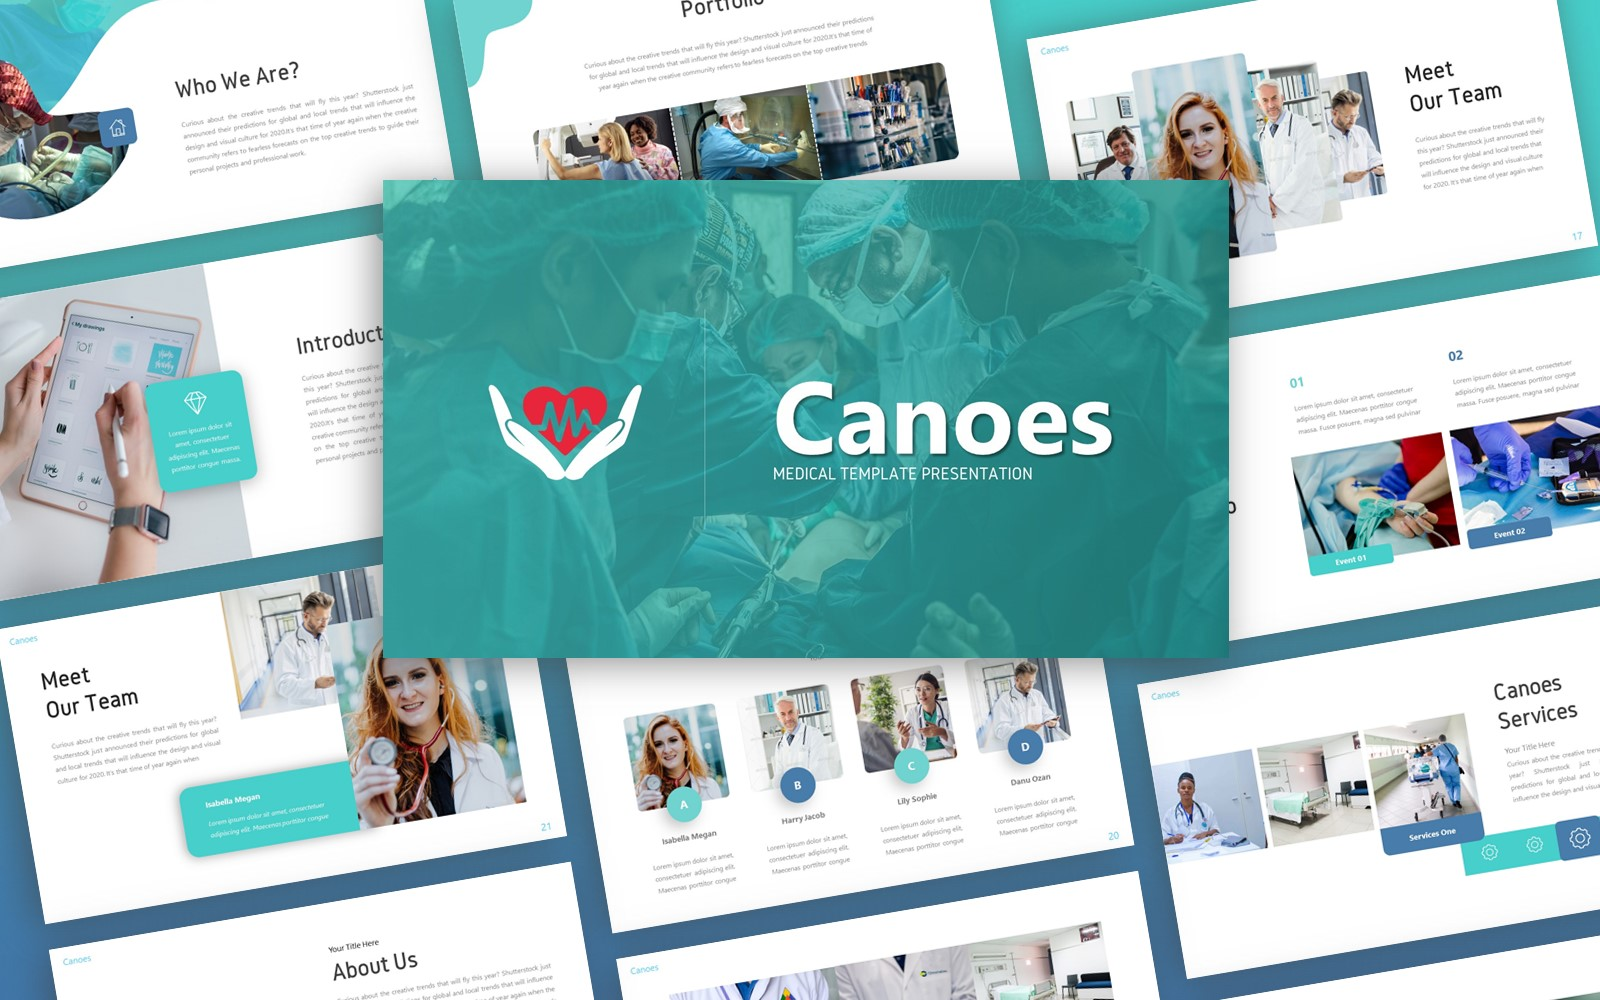 Canoes Medical Presentation PowerPoint Template